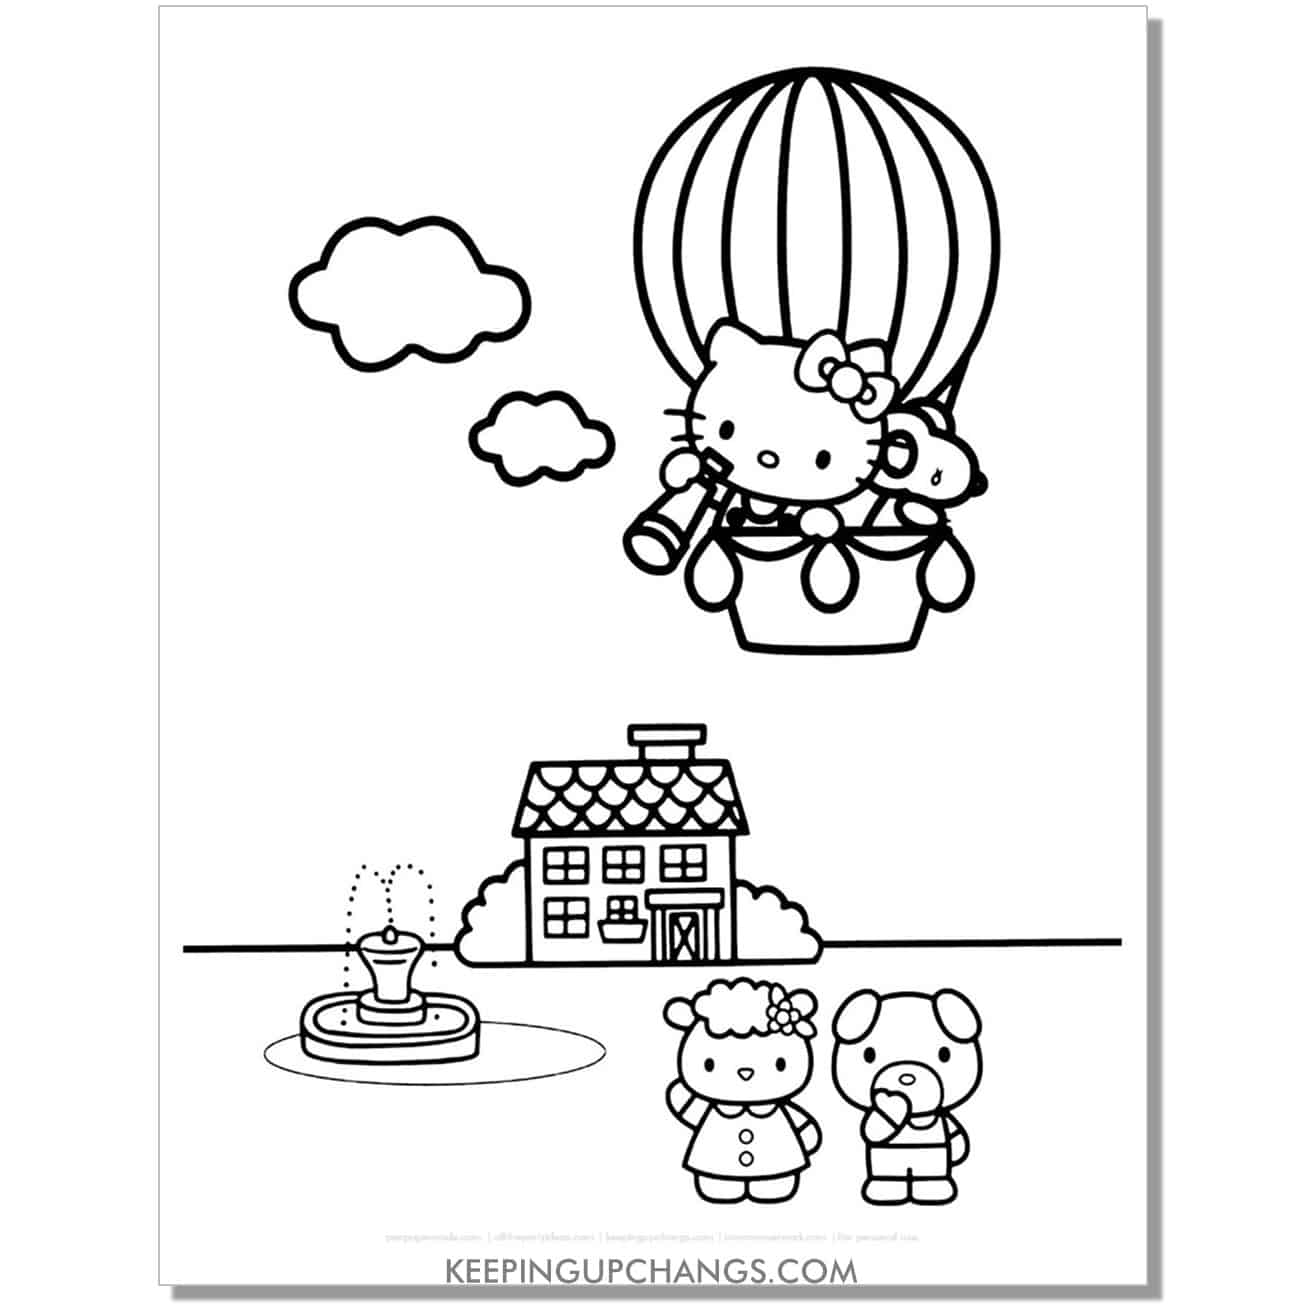 hot air balloon traveling hello kitty coloring page.